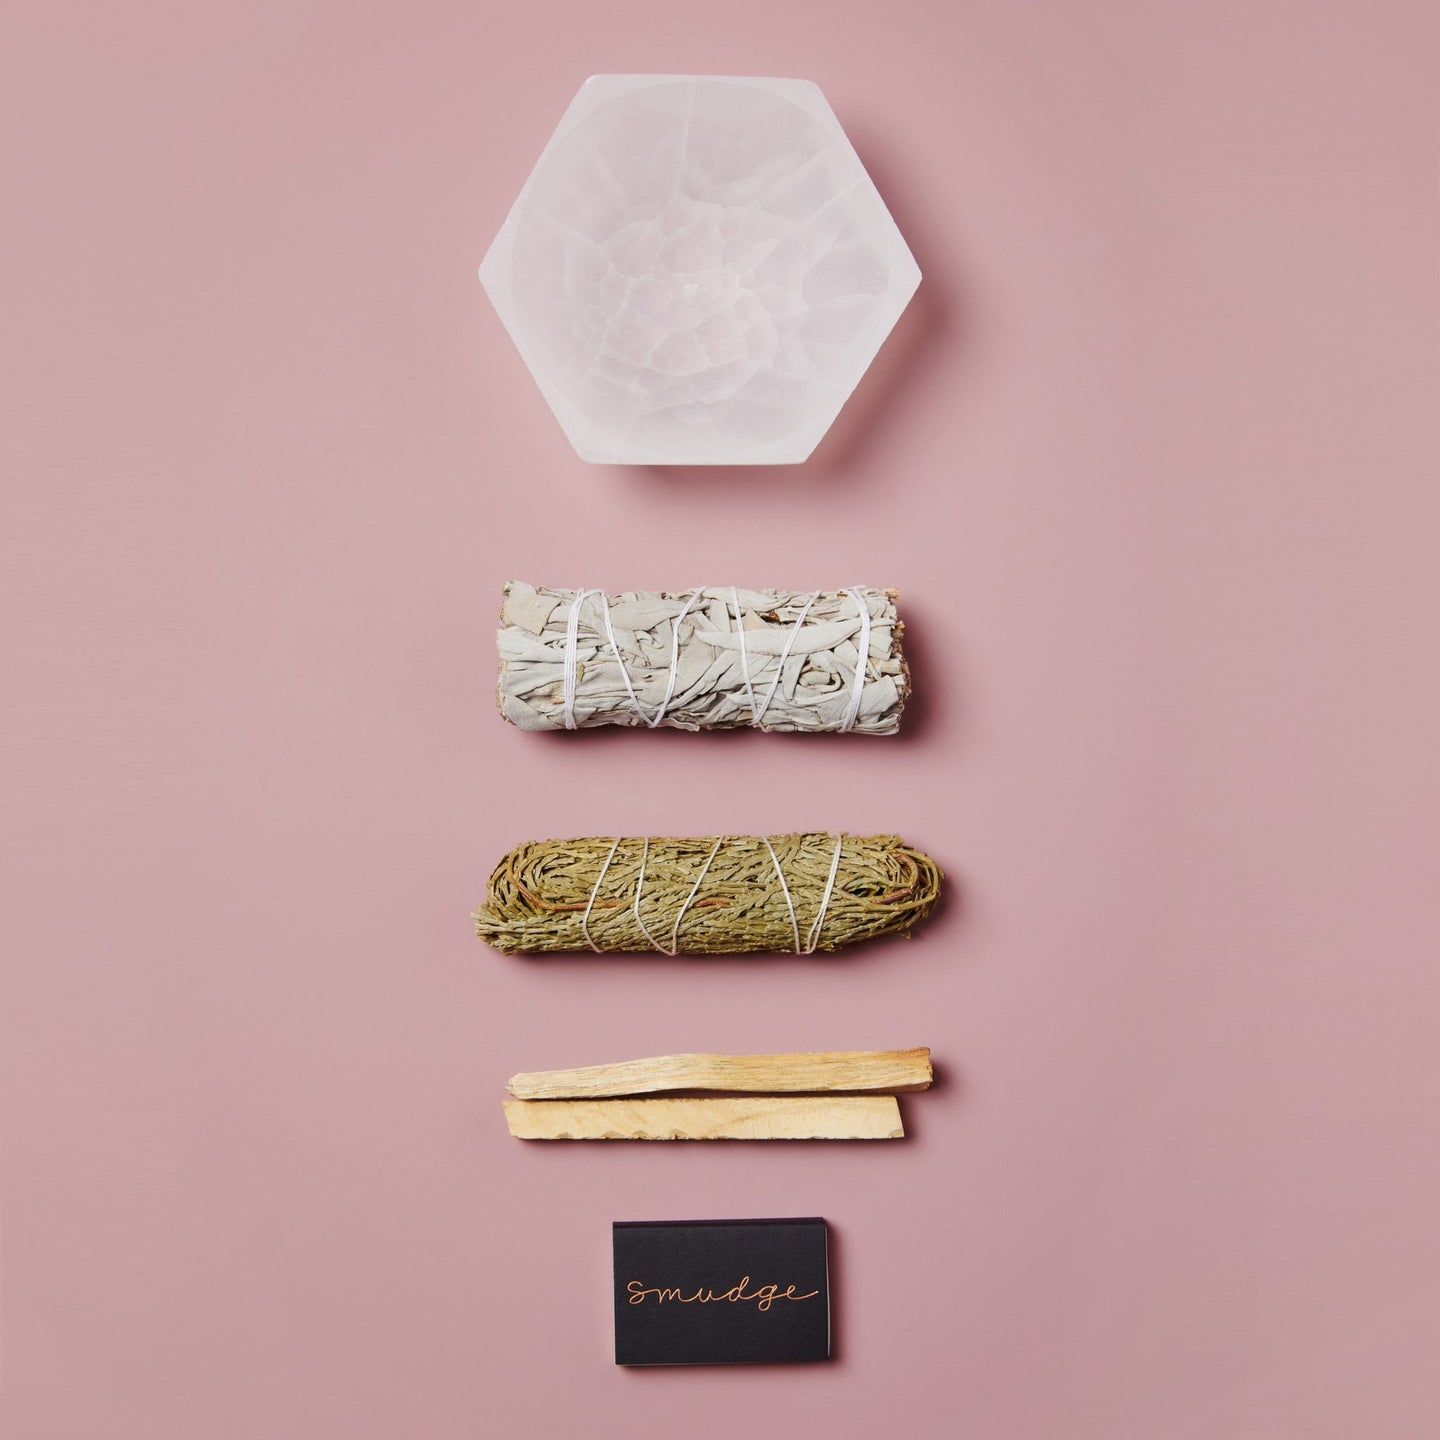 Smudge Wellness Selenite Smudging Trio / Neighborhood Goods